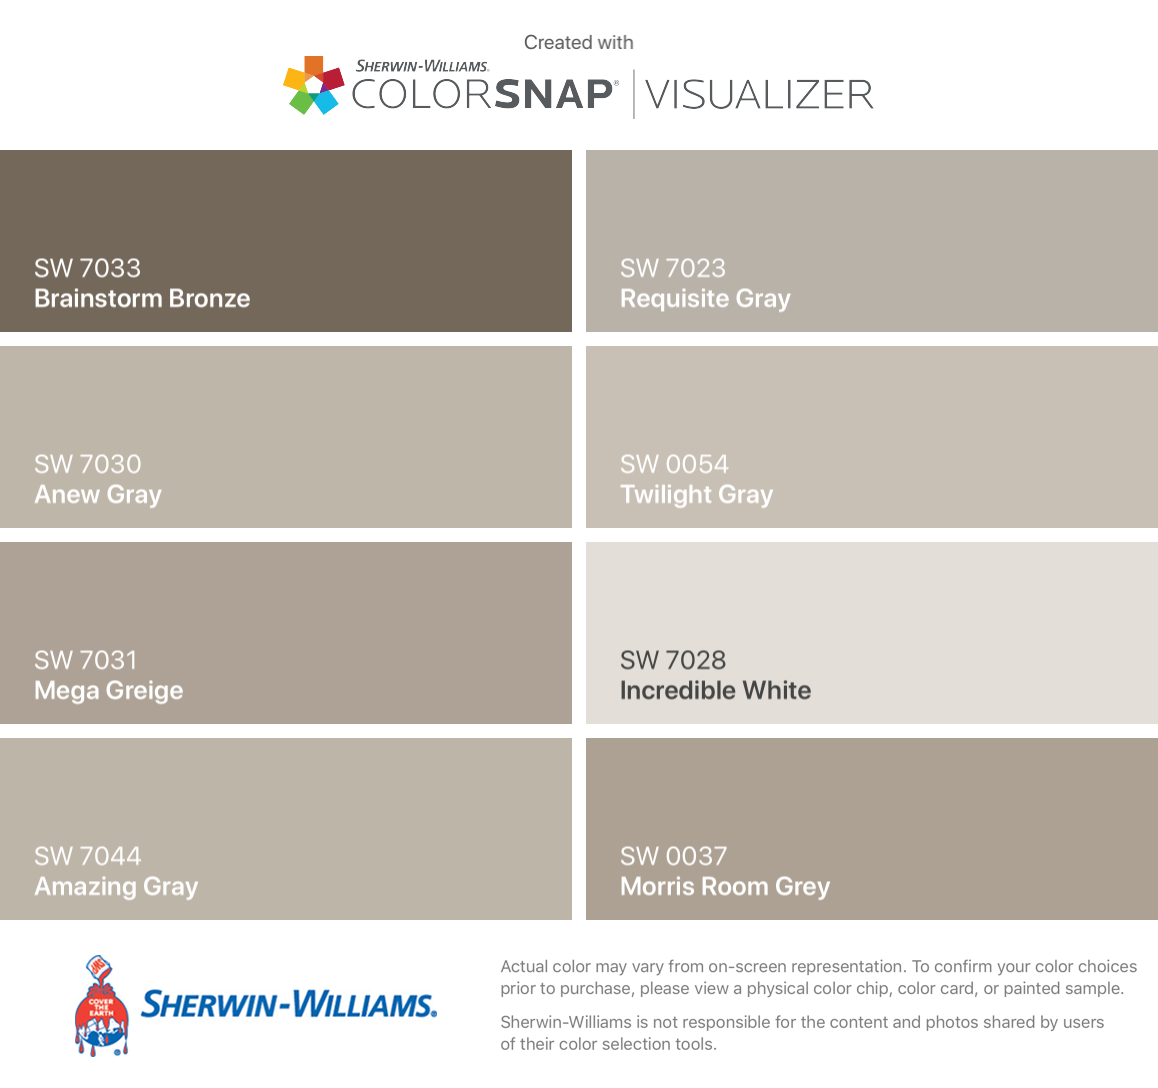 I Found These Colors With Colorsnap Visualizer For Iphone By Sherwin Williams Brainstorm